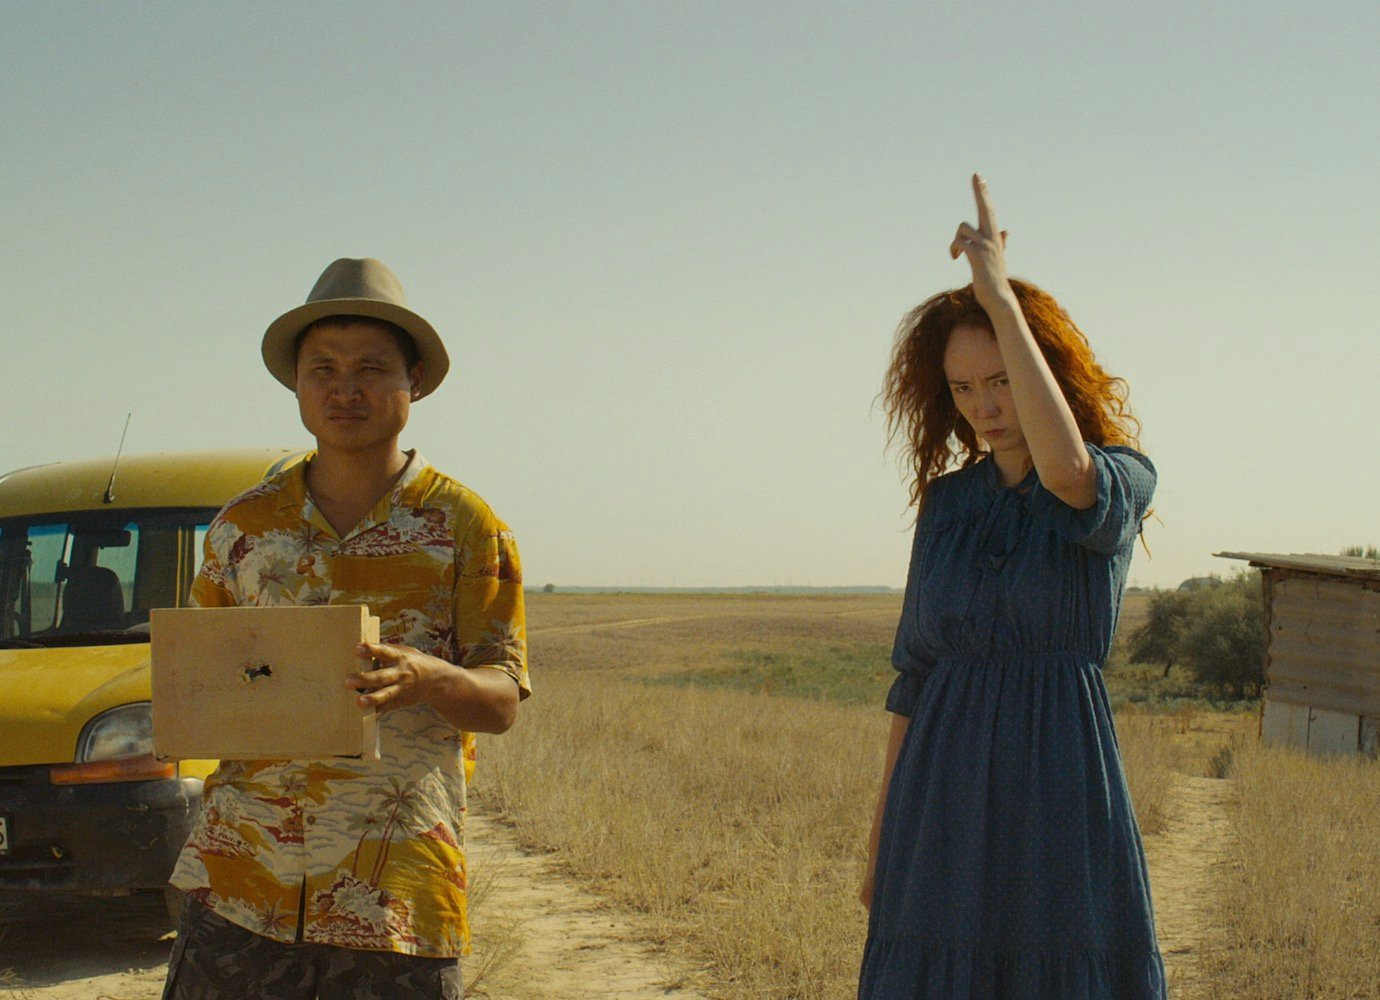 Yellow Cat follows one man's impossible dream to build a cinema in the Kazakh steppe | Film of the Week